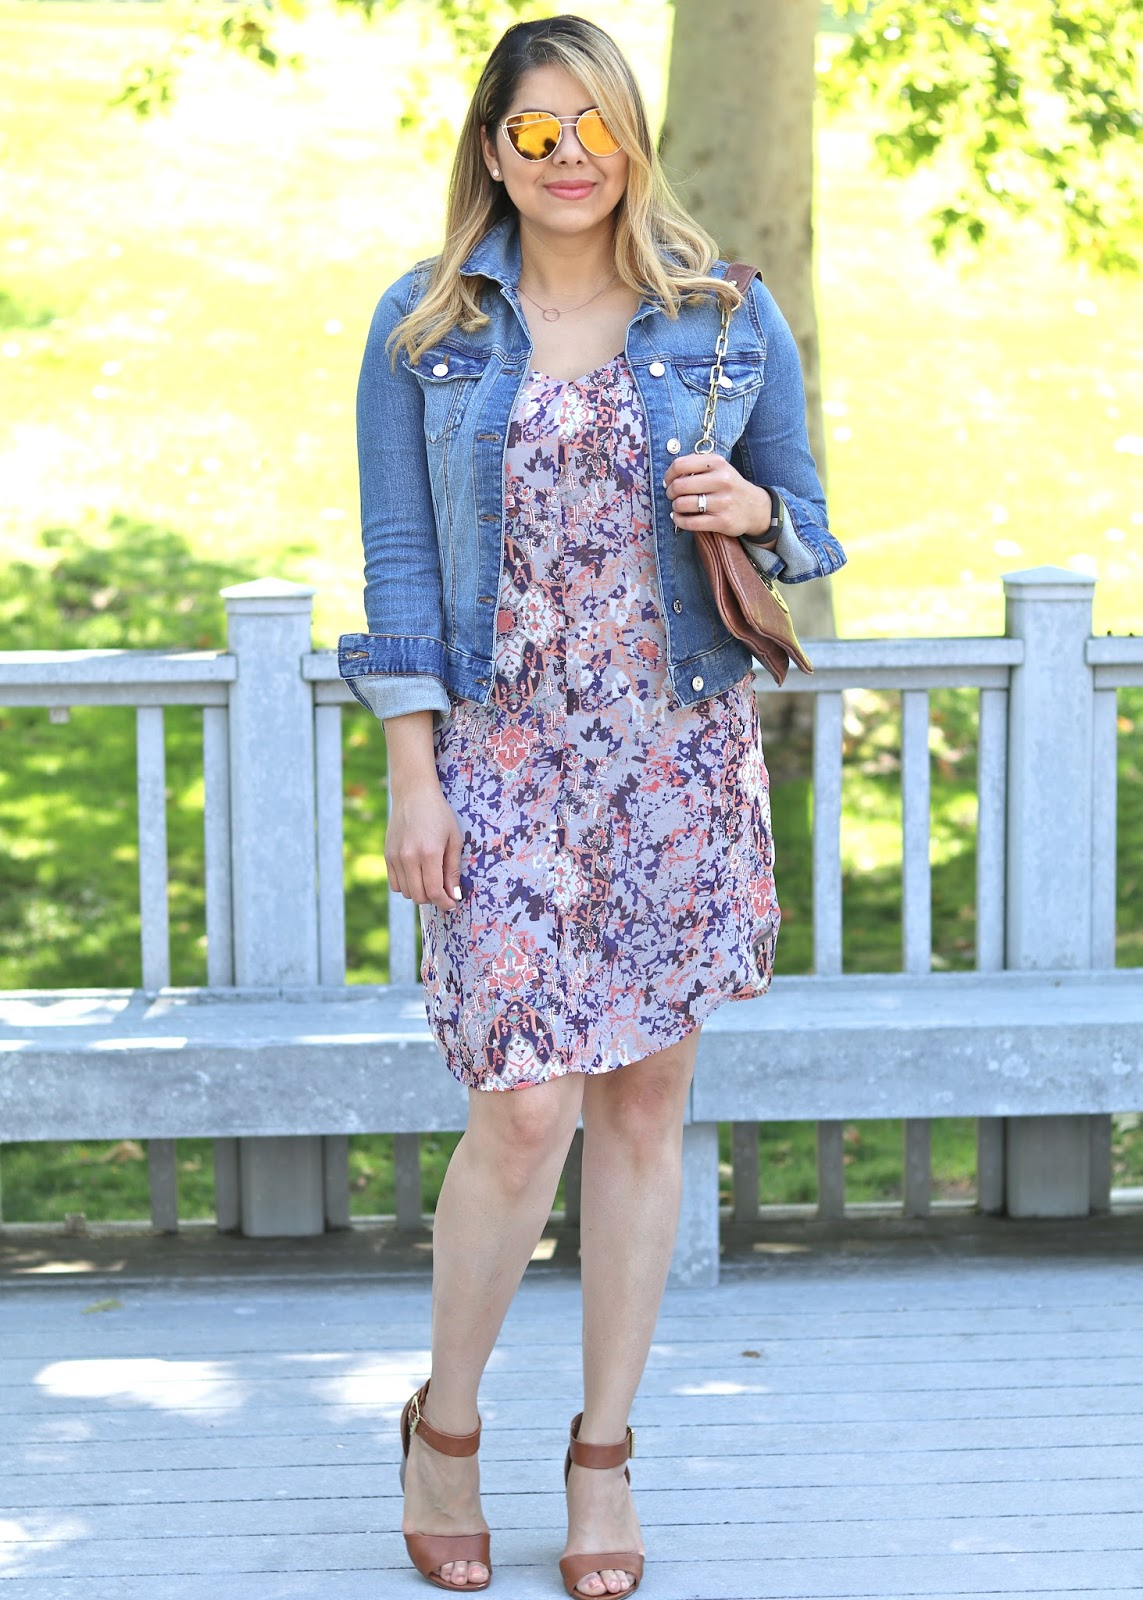 dainty necklace, what to wear this summer, summer dress and jean jacket, casual stroll outfit, lunch outfit